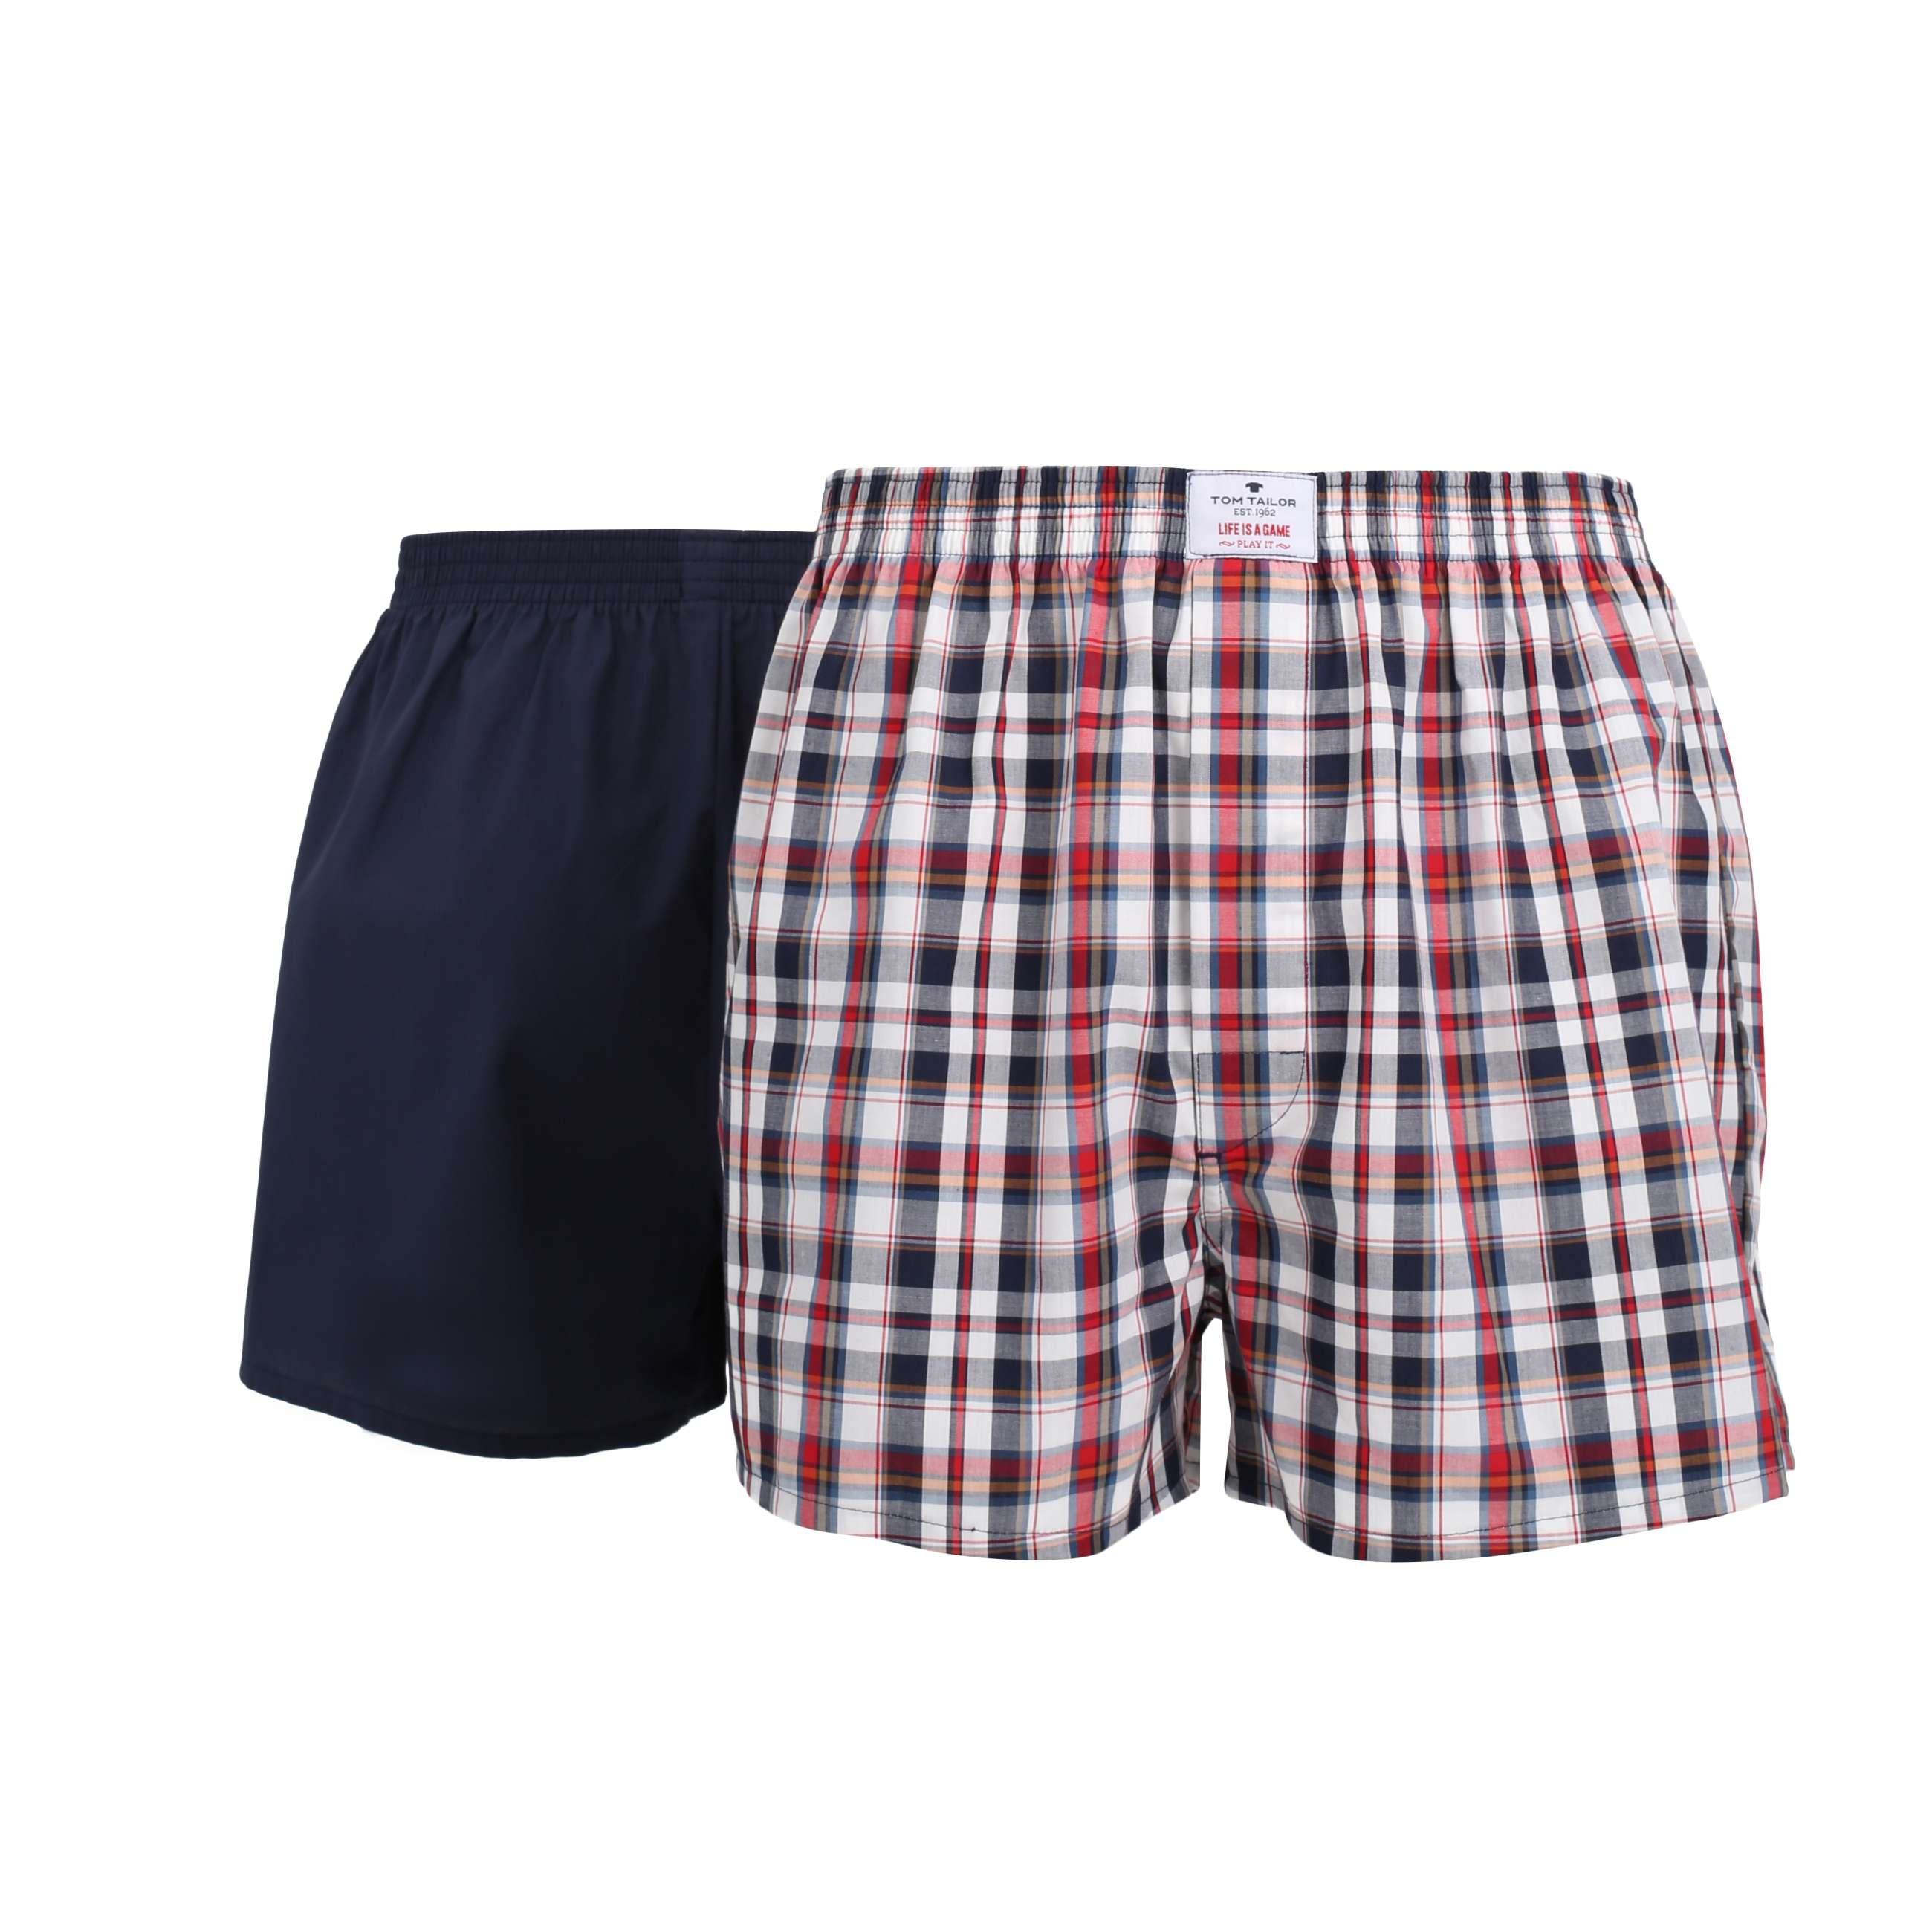 tom tailor herren boxershort rot kariert 2er pack set. Black Bedroom Furniture Sets. Home Design Ideas